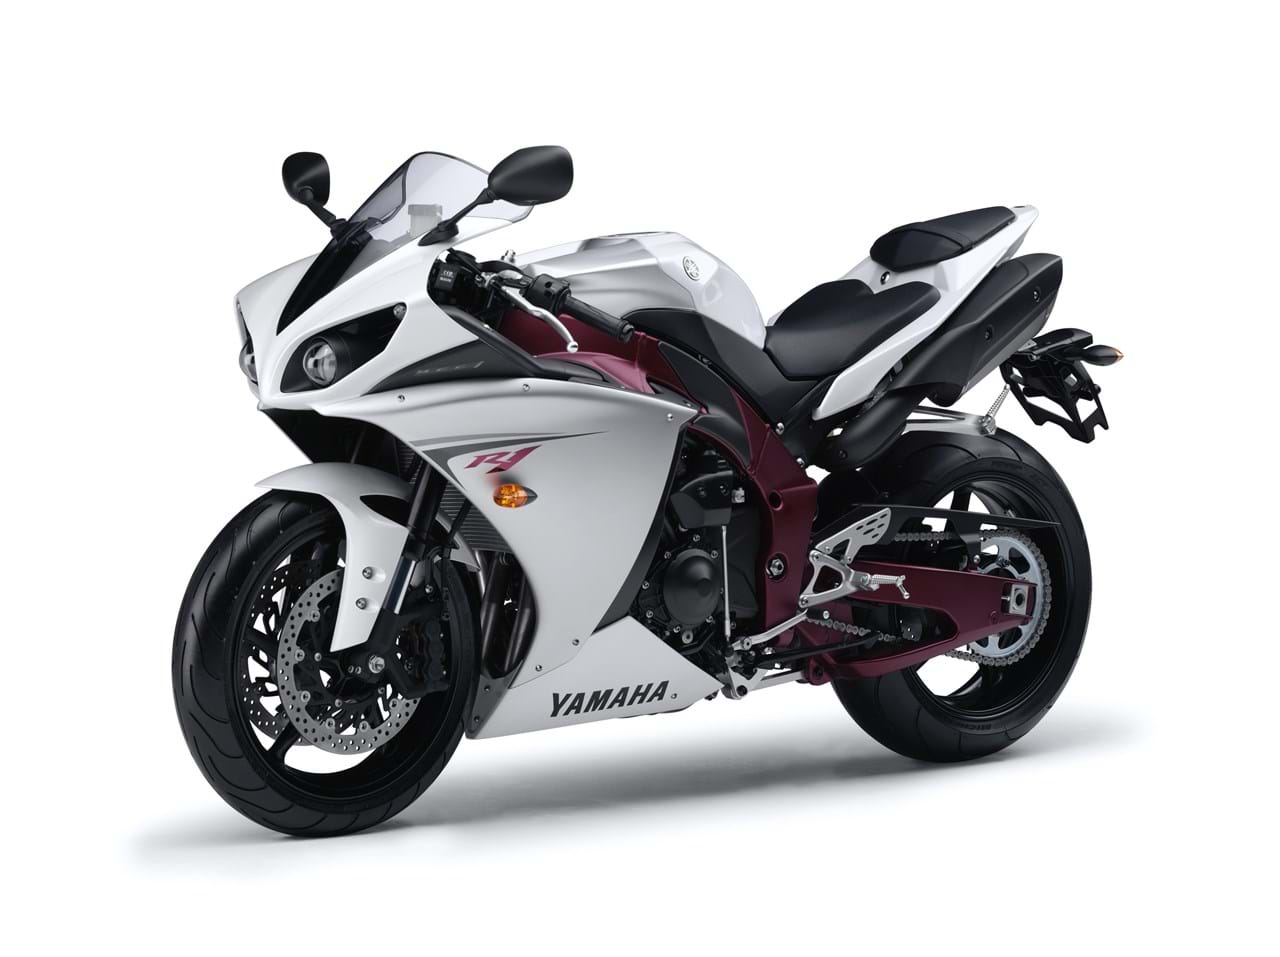 Yamaha YZF-R1 (2009-2011) for sale & price guide | TheBikeMarket